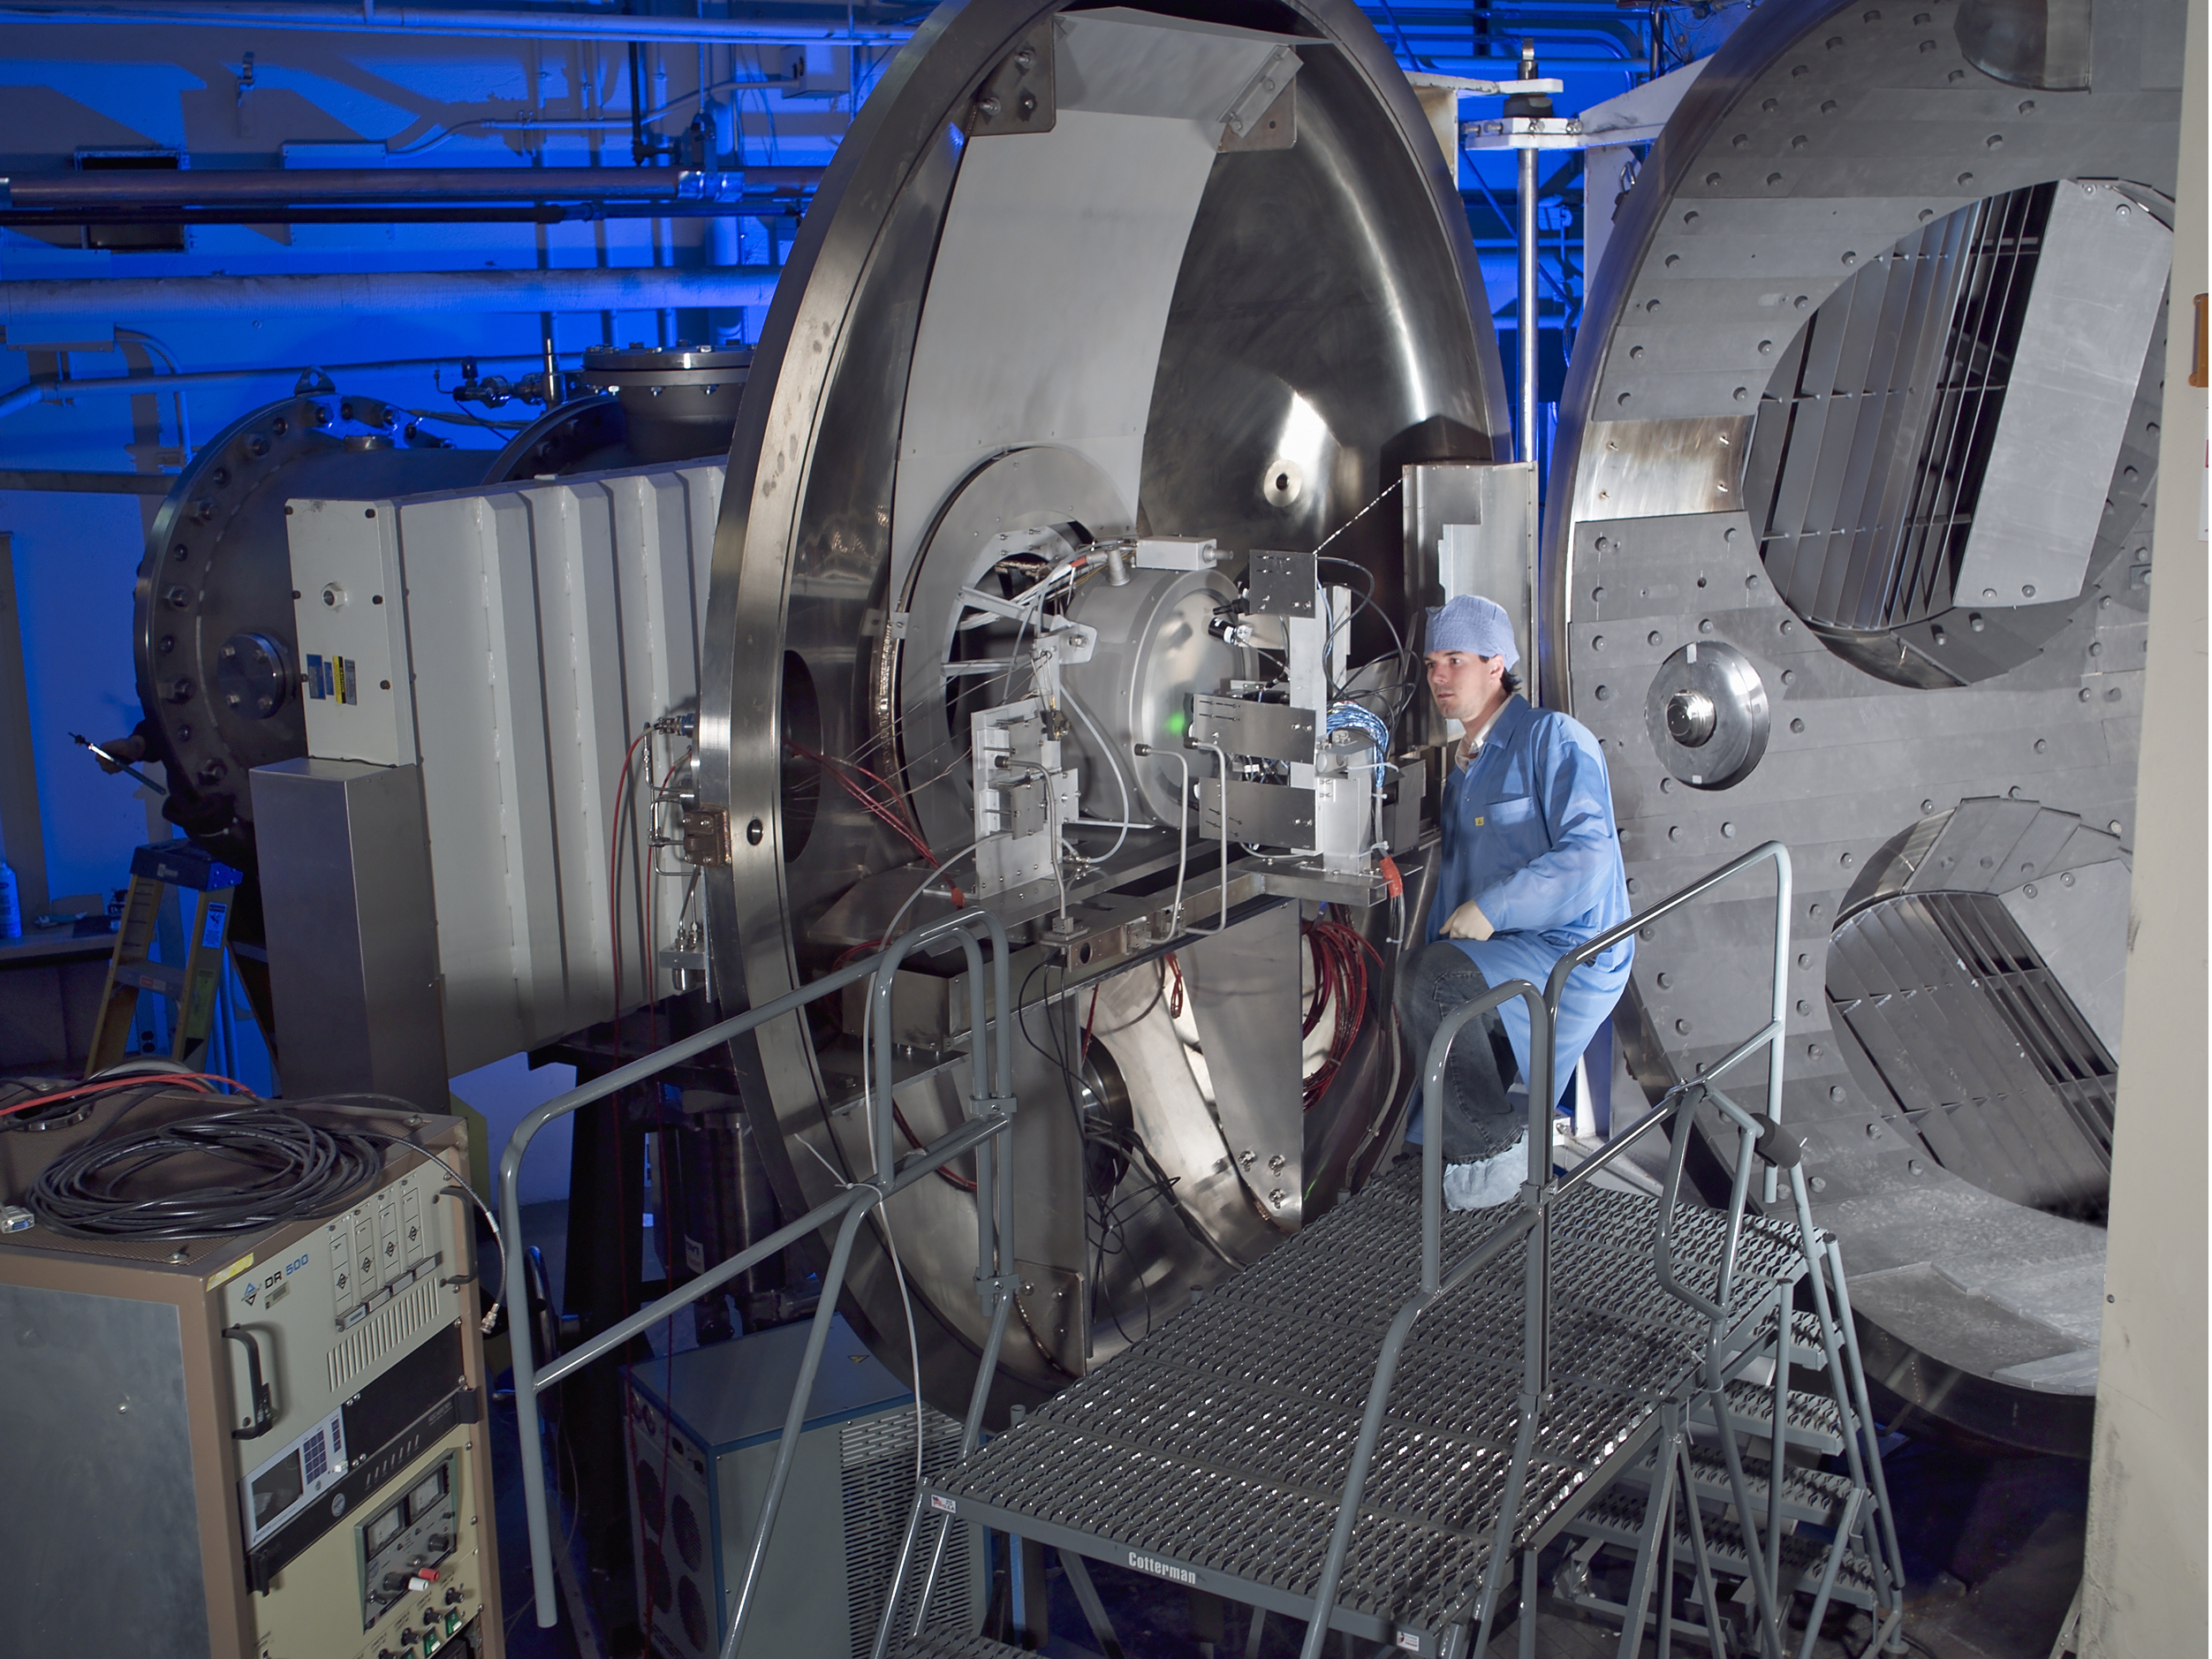 An engineer at NASA Glenn checks the alignment of a camera system for the NEXT Long Duration Test prior to closing the vacuum facility back in 2005. The cameras take high-quality images of critical thruster components to track how these components erode with time. Image Credit: NASA